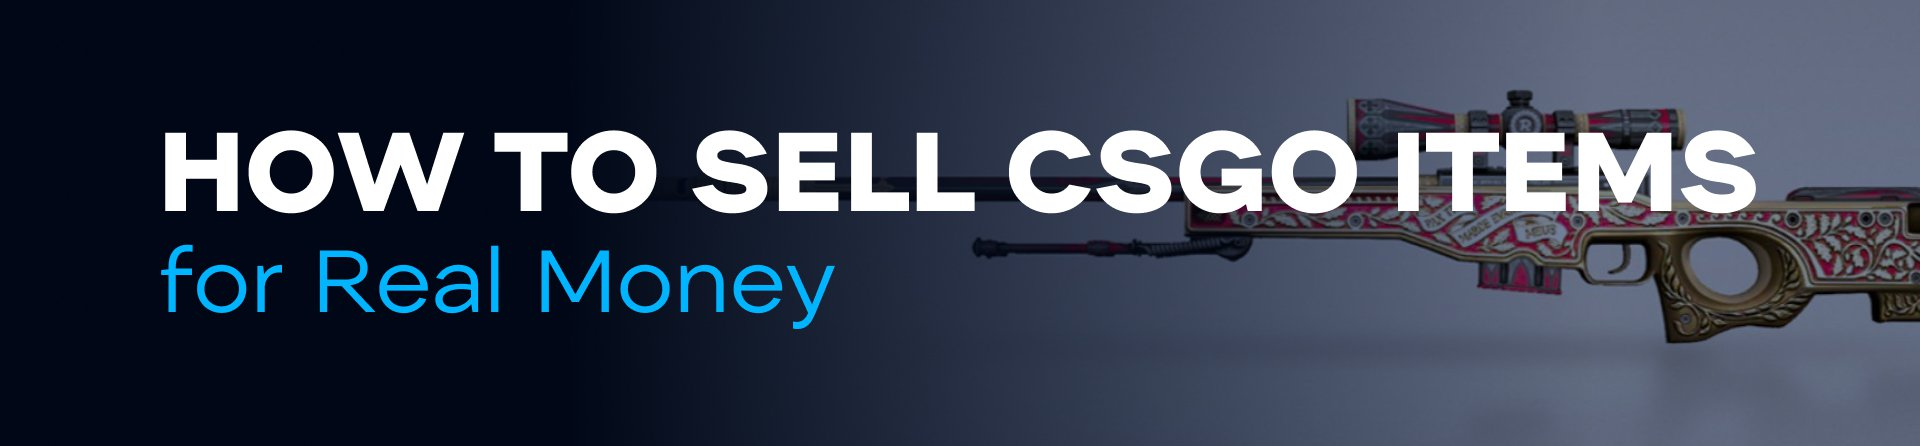 How to Sell CSGO items for Real Money